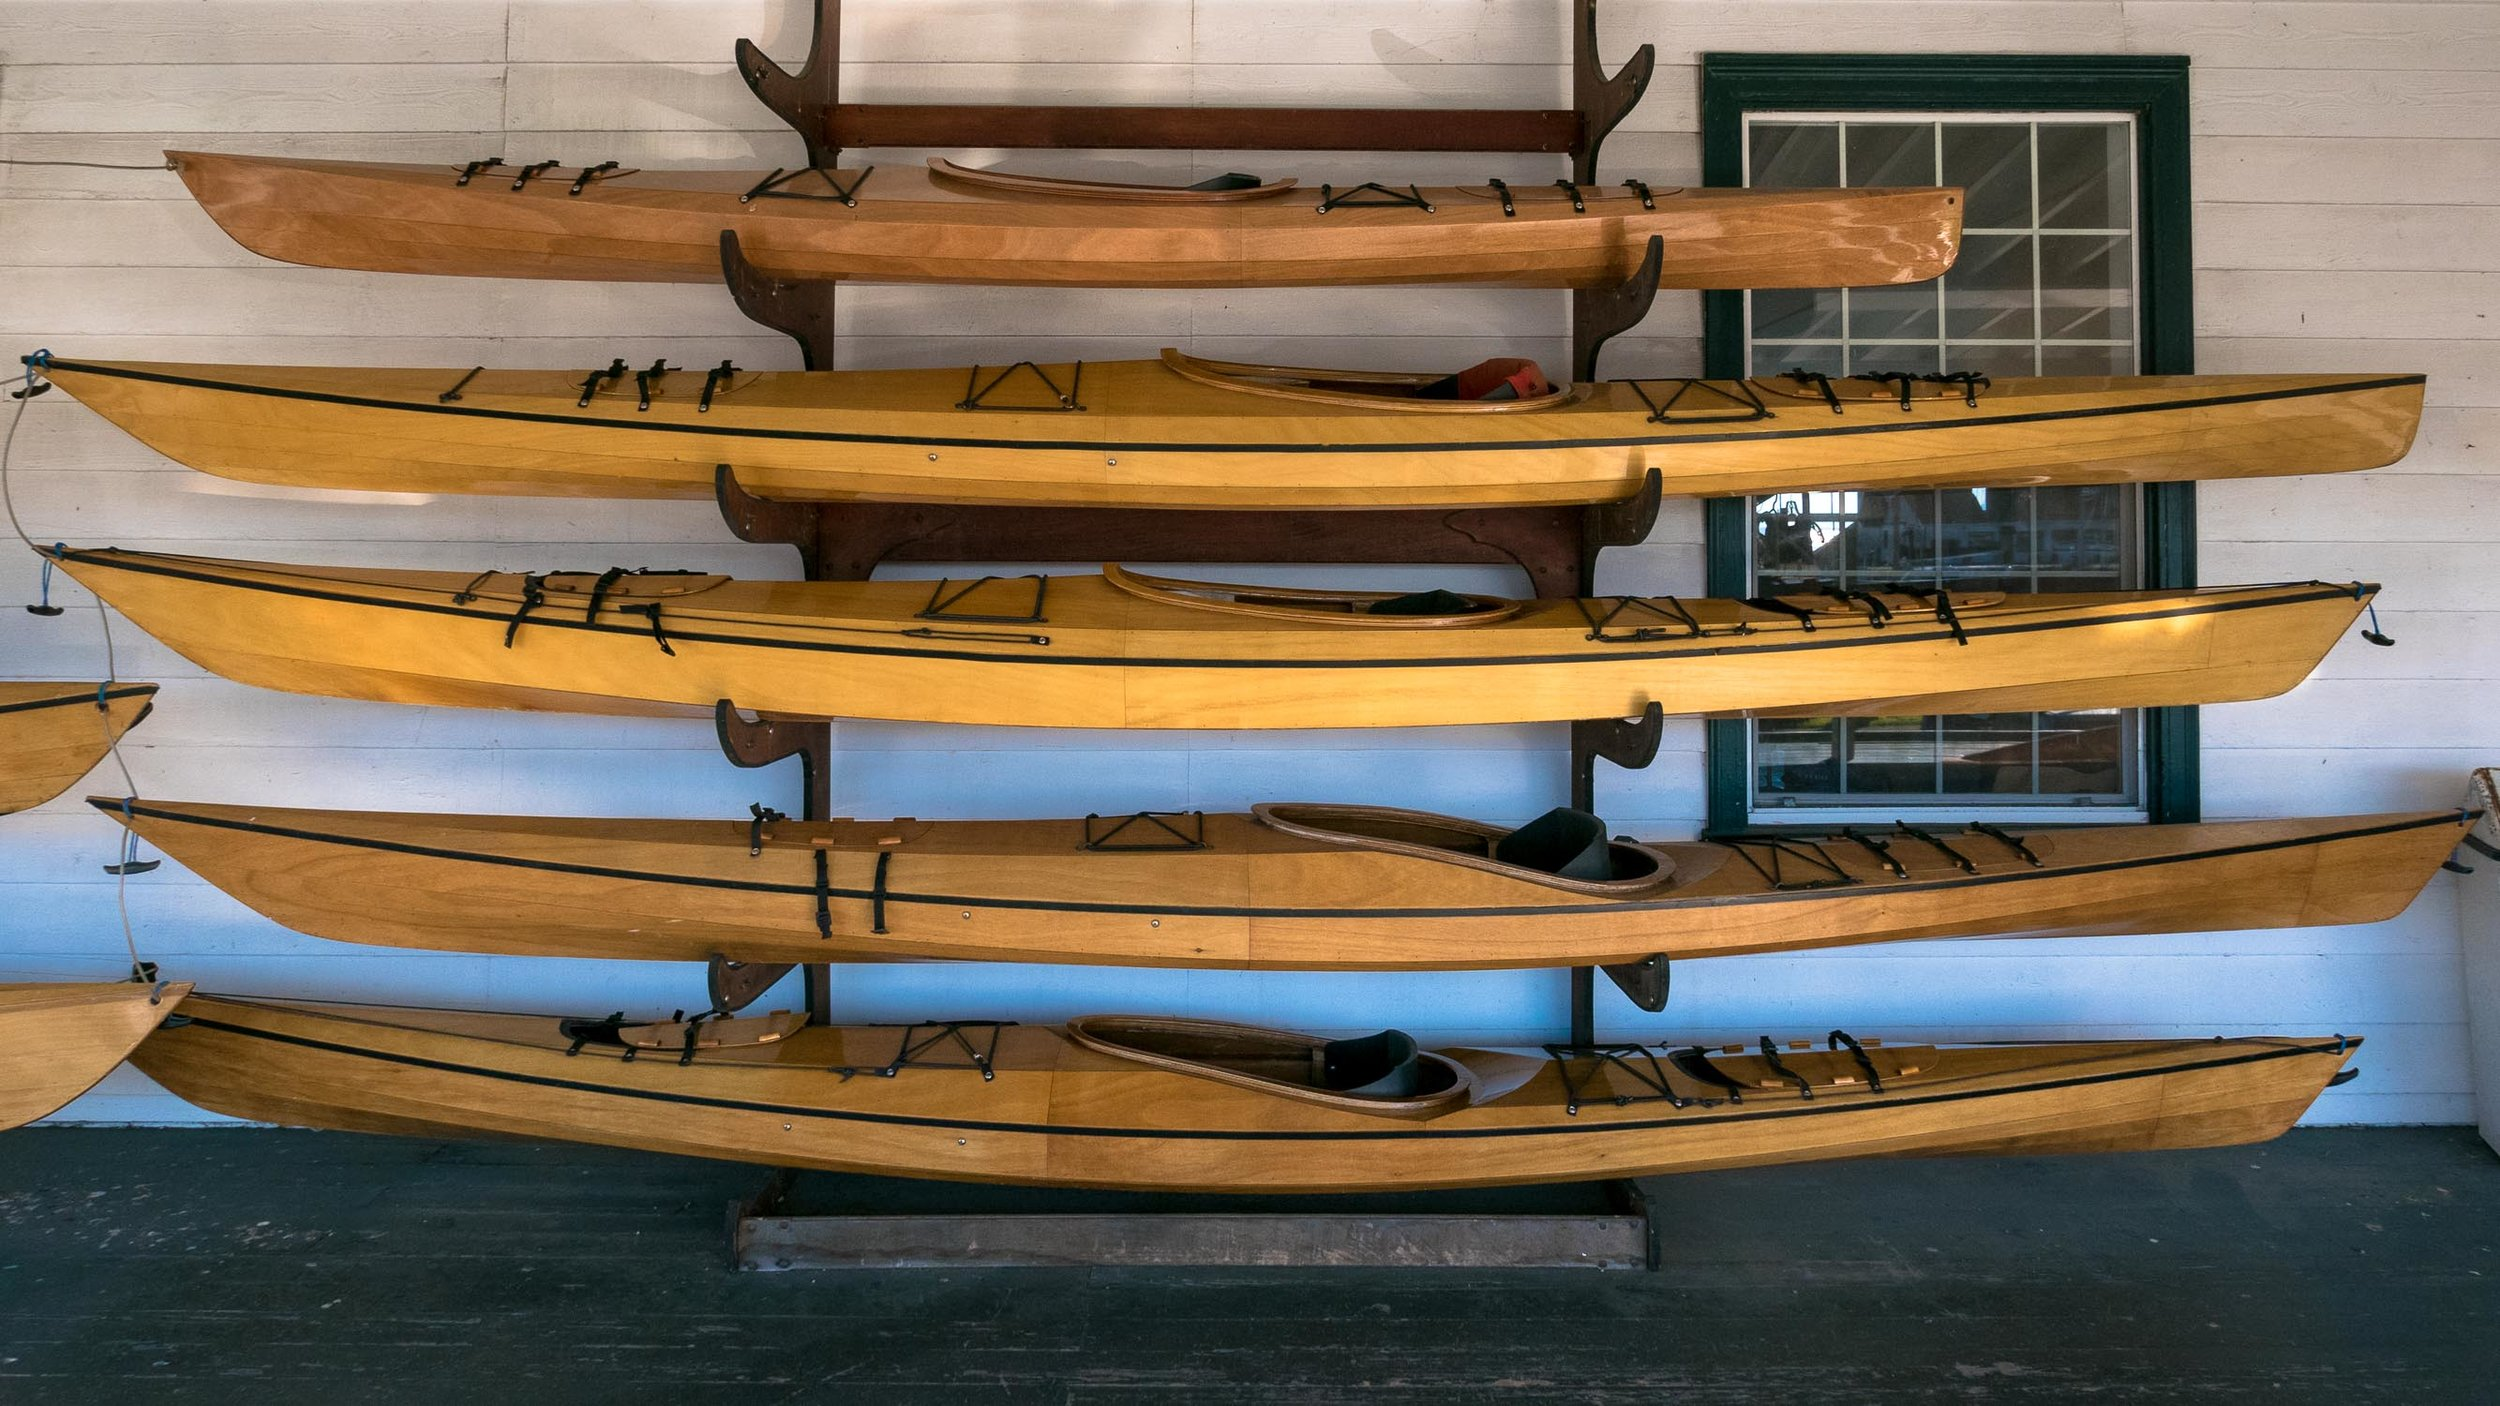 Day 4. Wooden sea kayaks are a work of art!